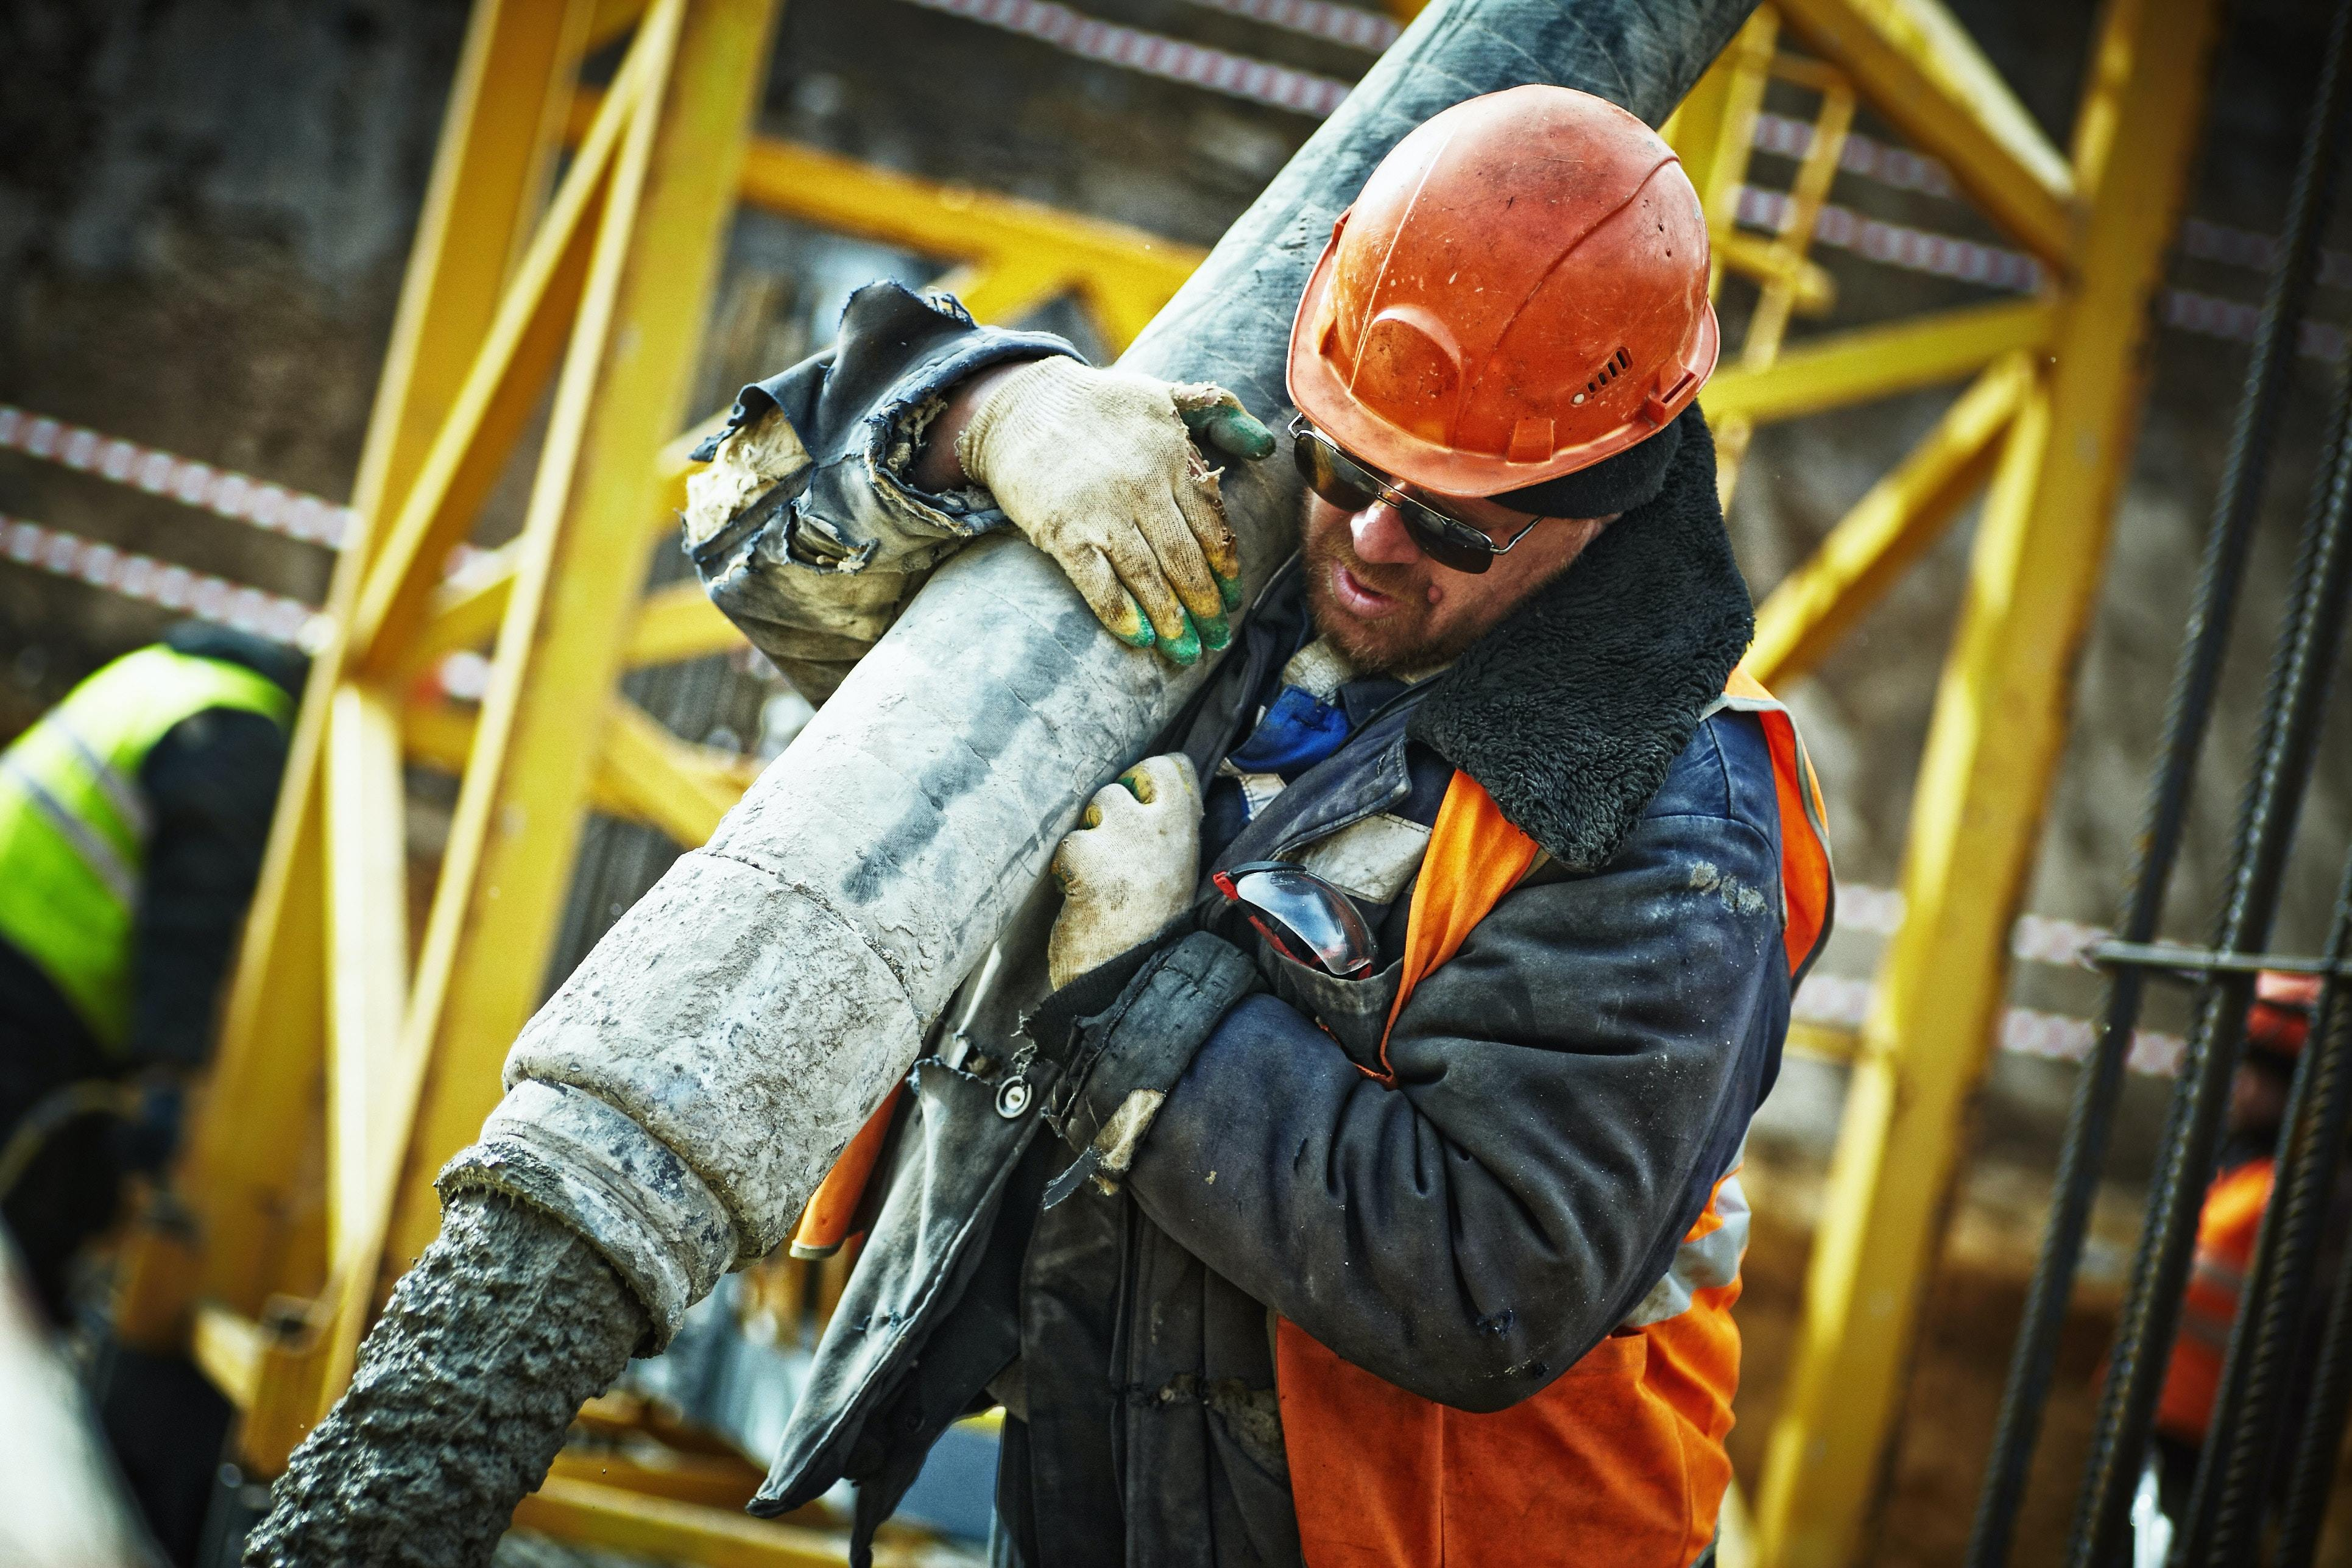 workwear-personal-protective-equipment-business-nsw